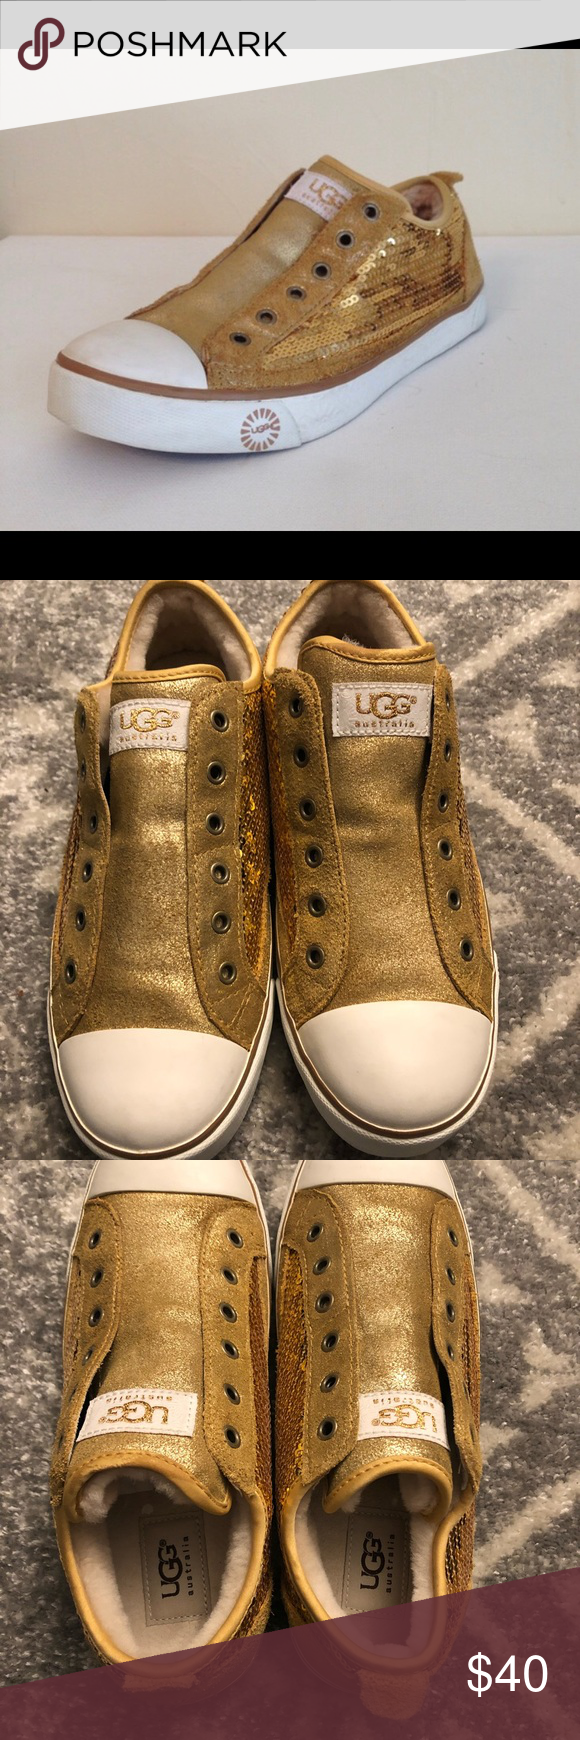 ccb71666b92 Ugg Laela sneakers gold sequins size 8 Ugg Laela sneakers with gold ...